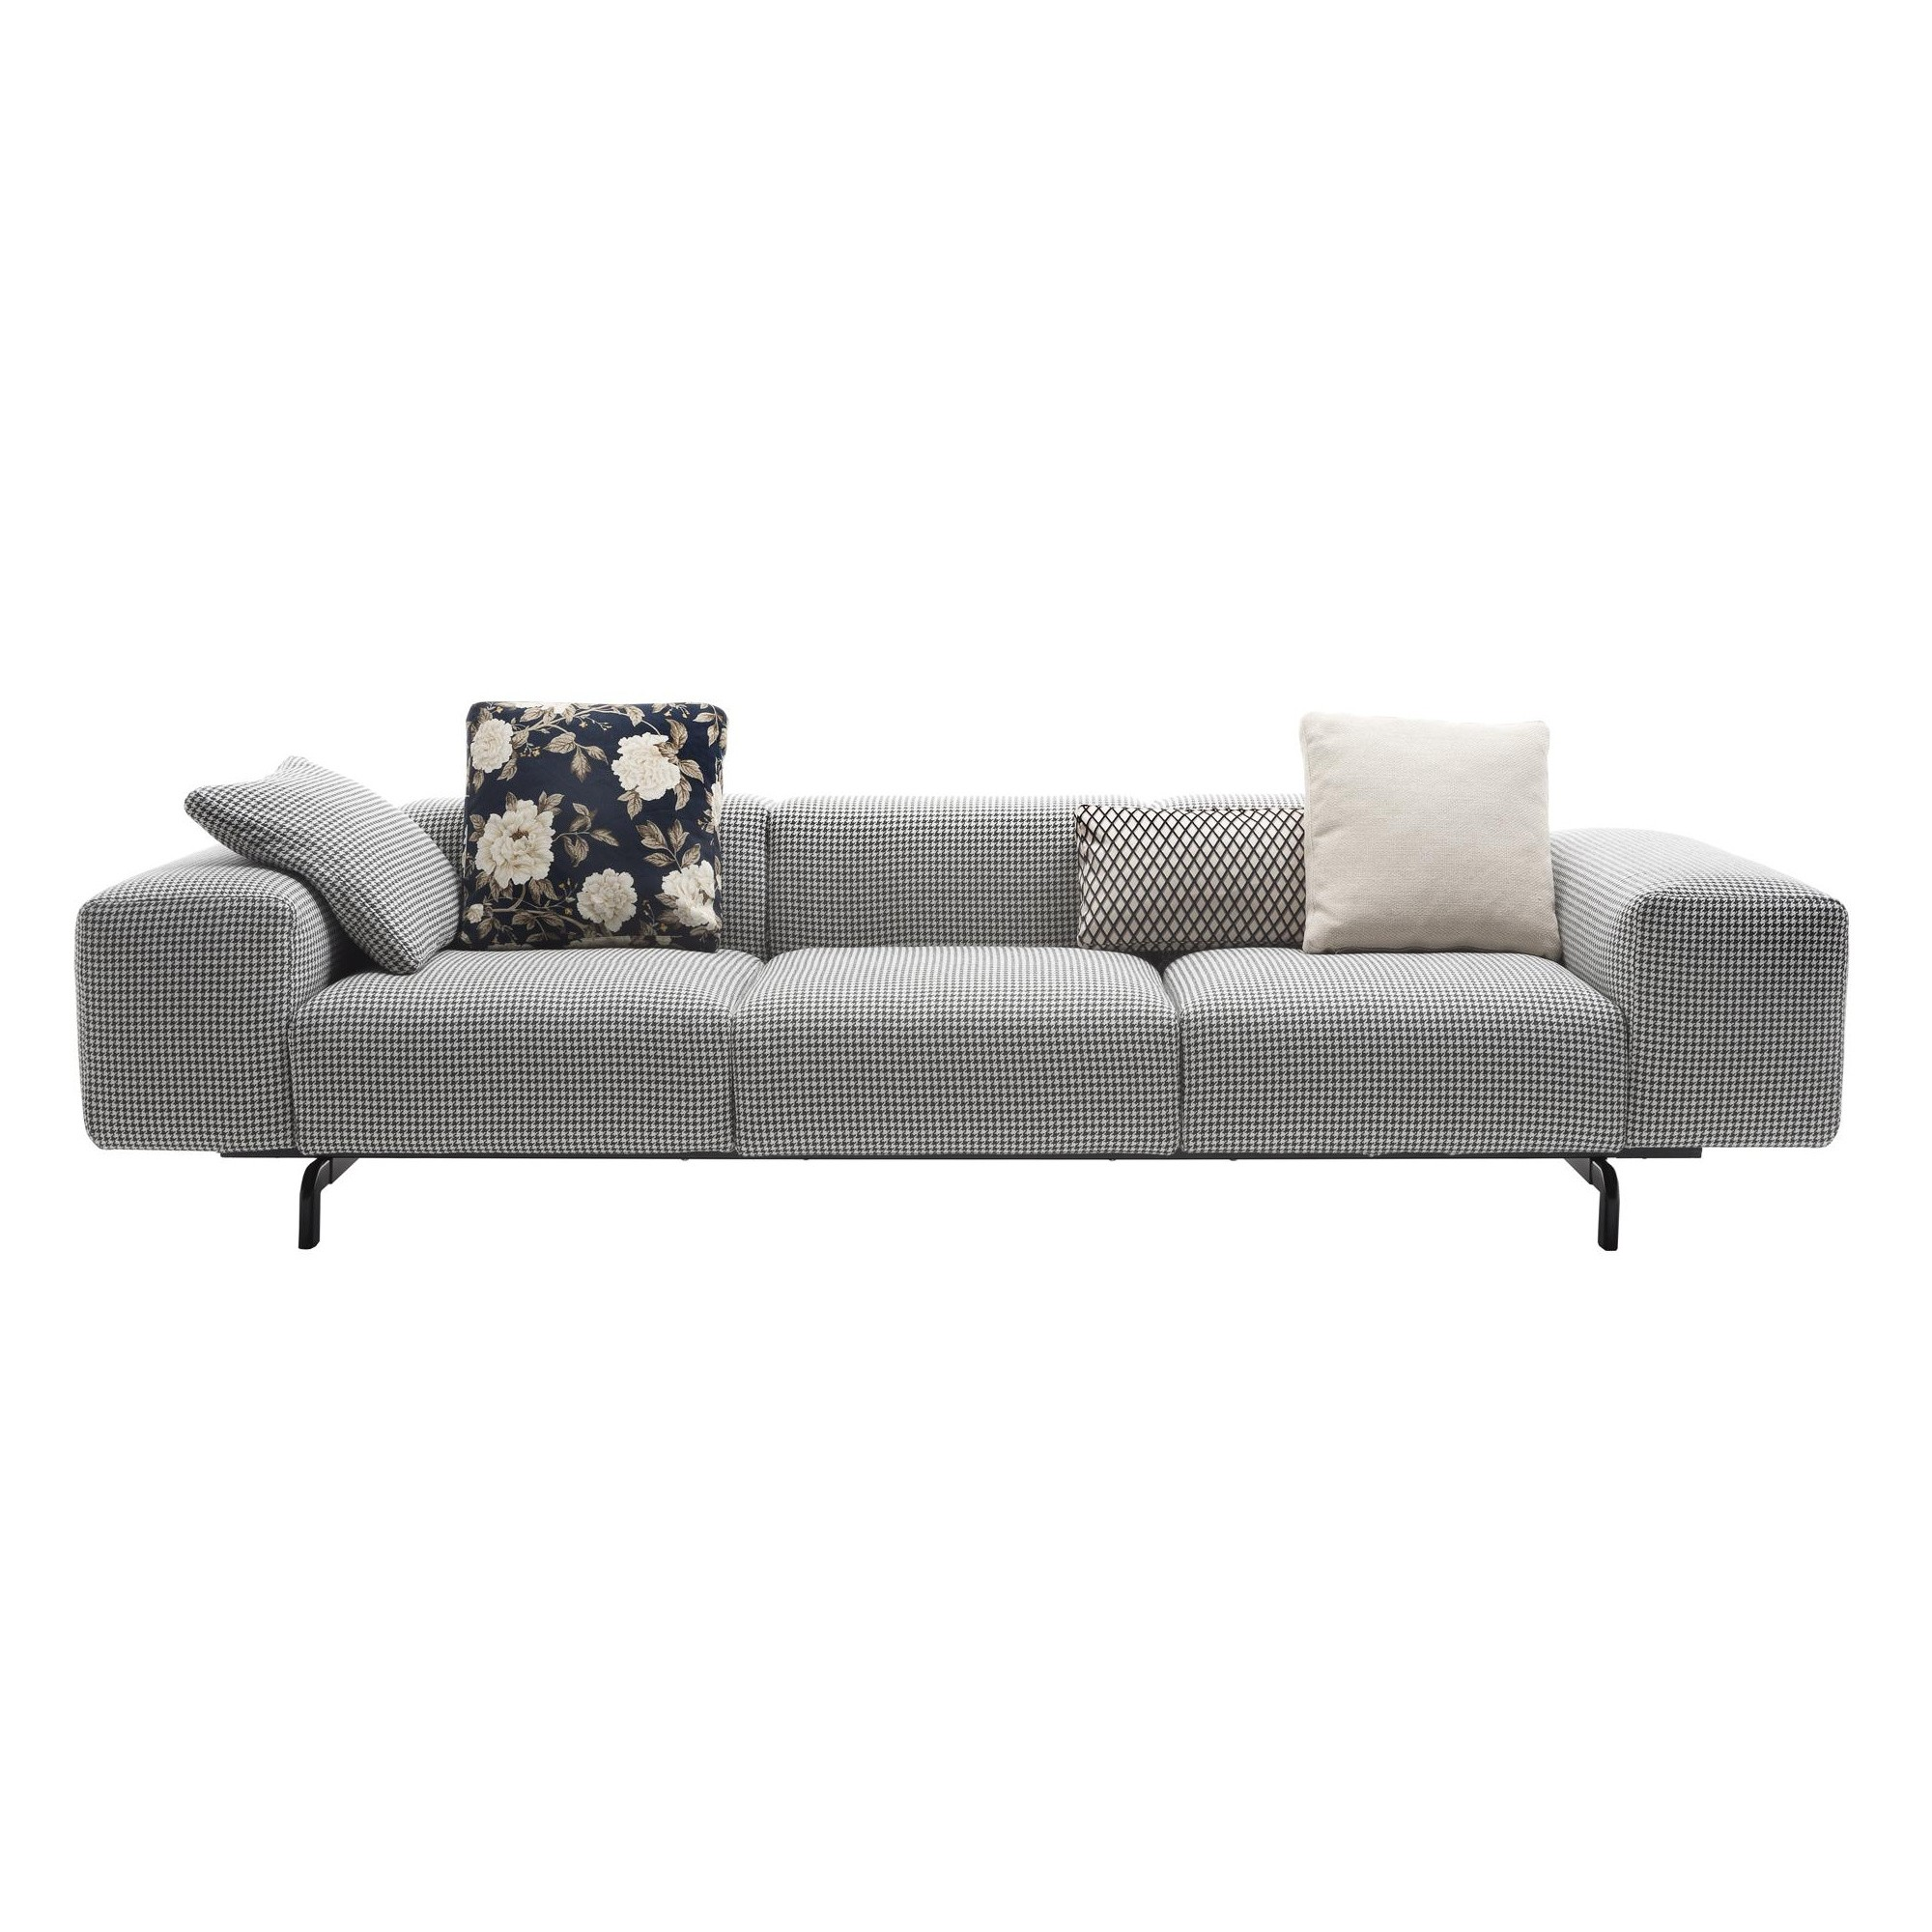 Kartell Largo 3 Sitzer Sofa 301x96x69cm Ambientedirect